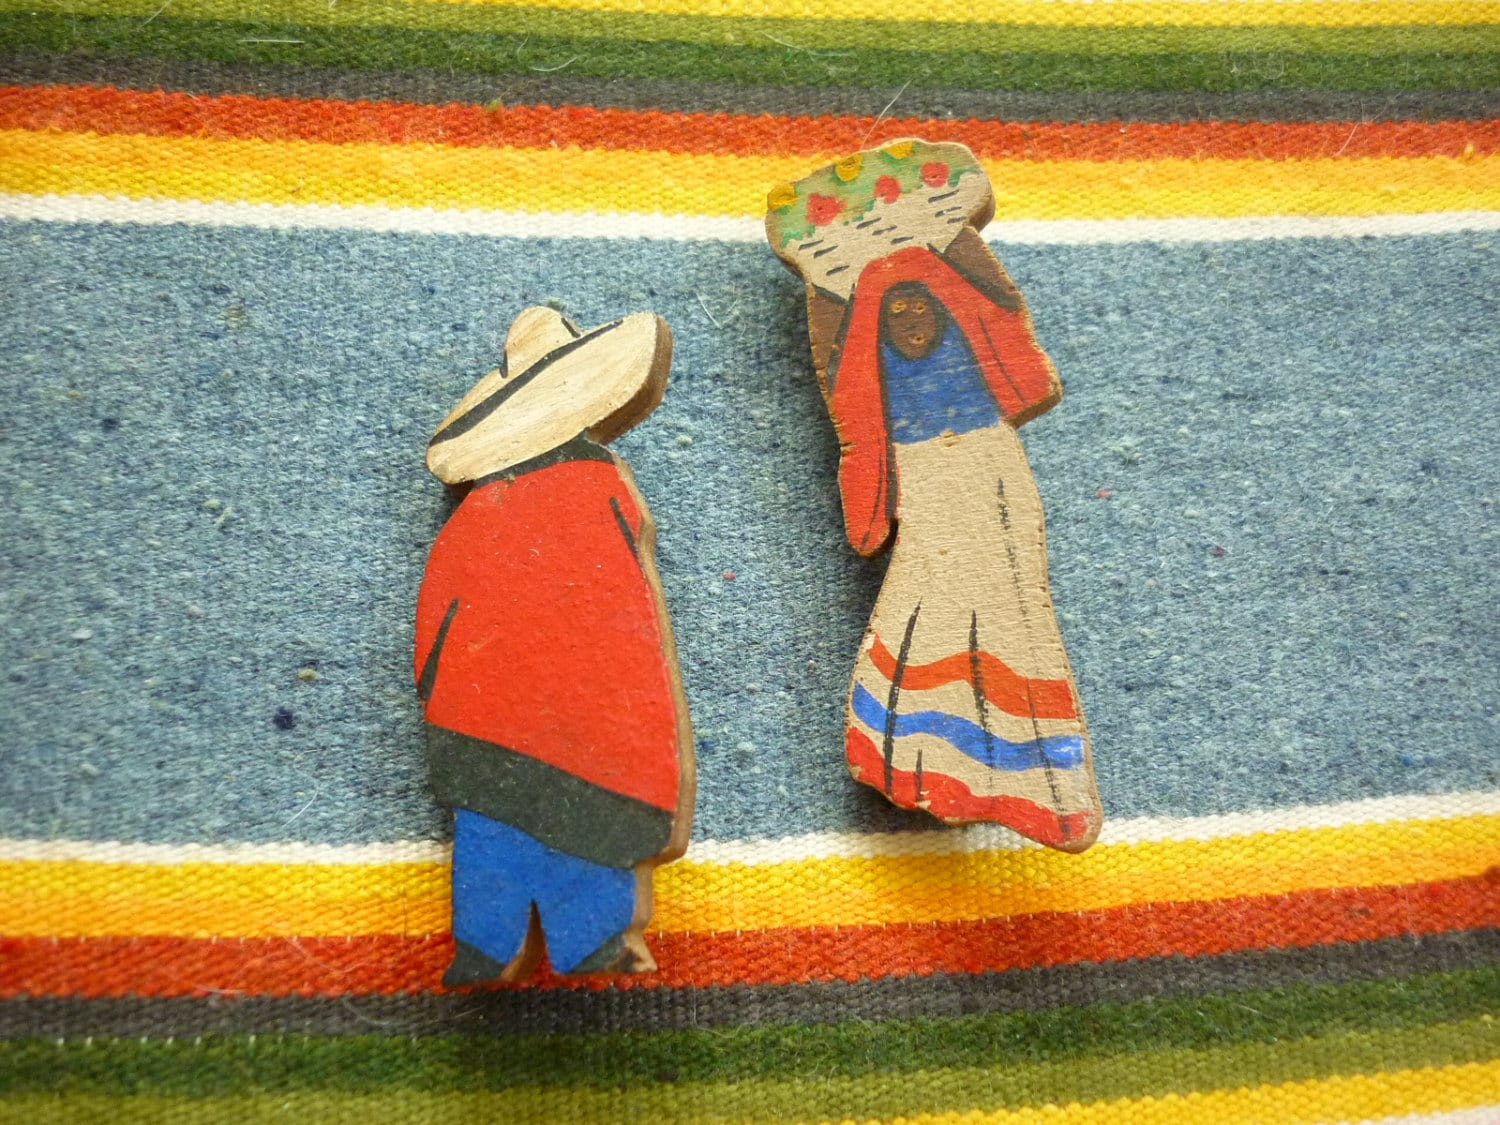 Pair of Mexican Figure Pins hand-painted souvenirs - decotodiscovintage